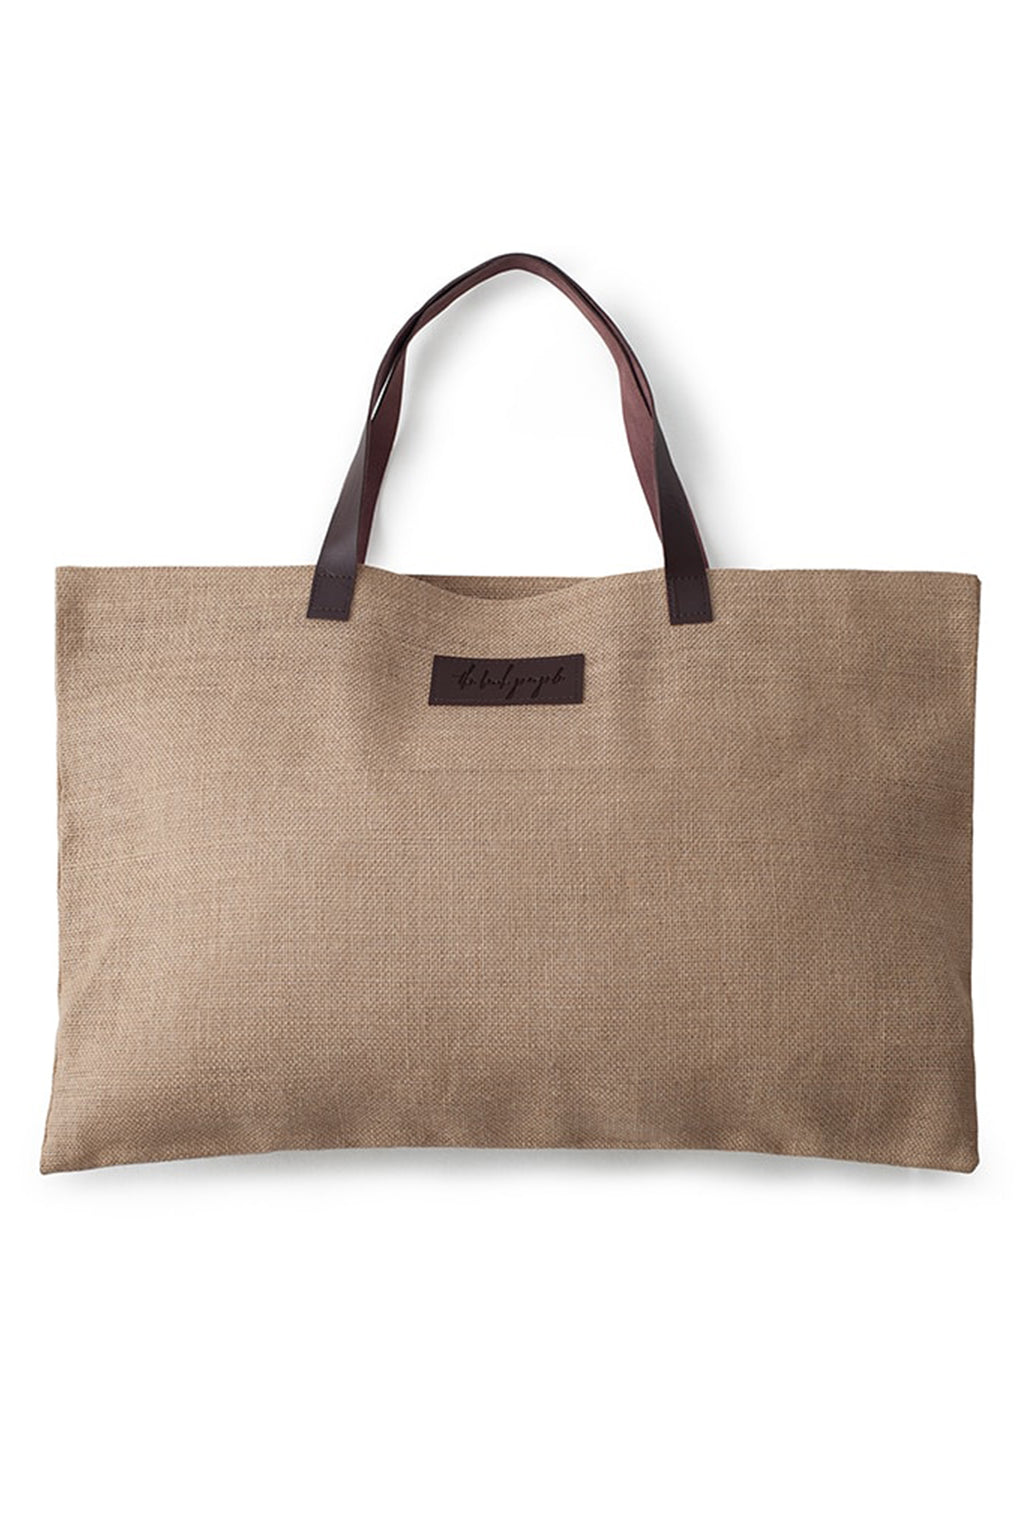 The Beach People Jute Bag, Original